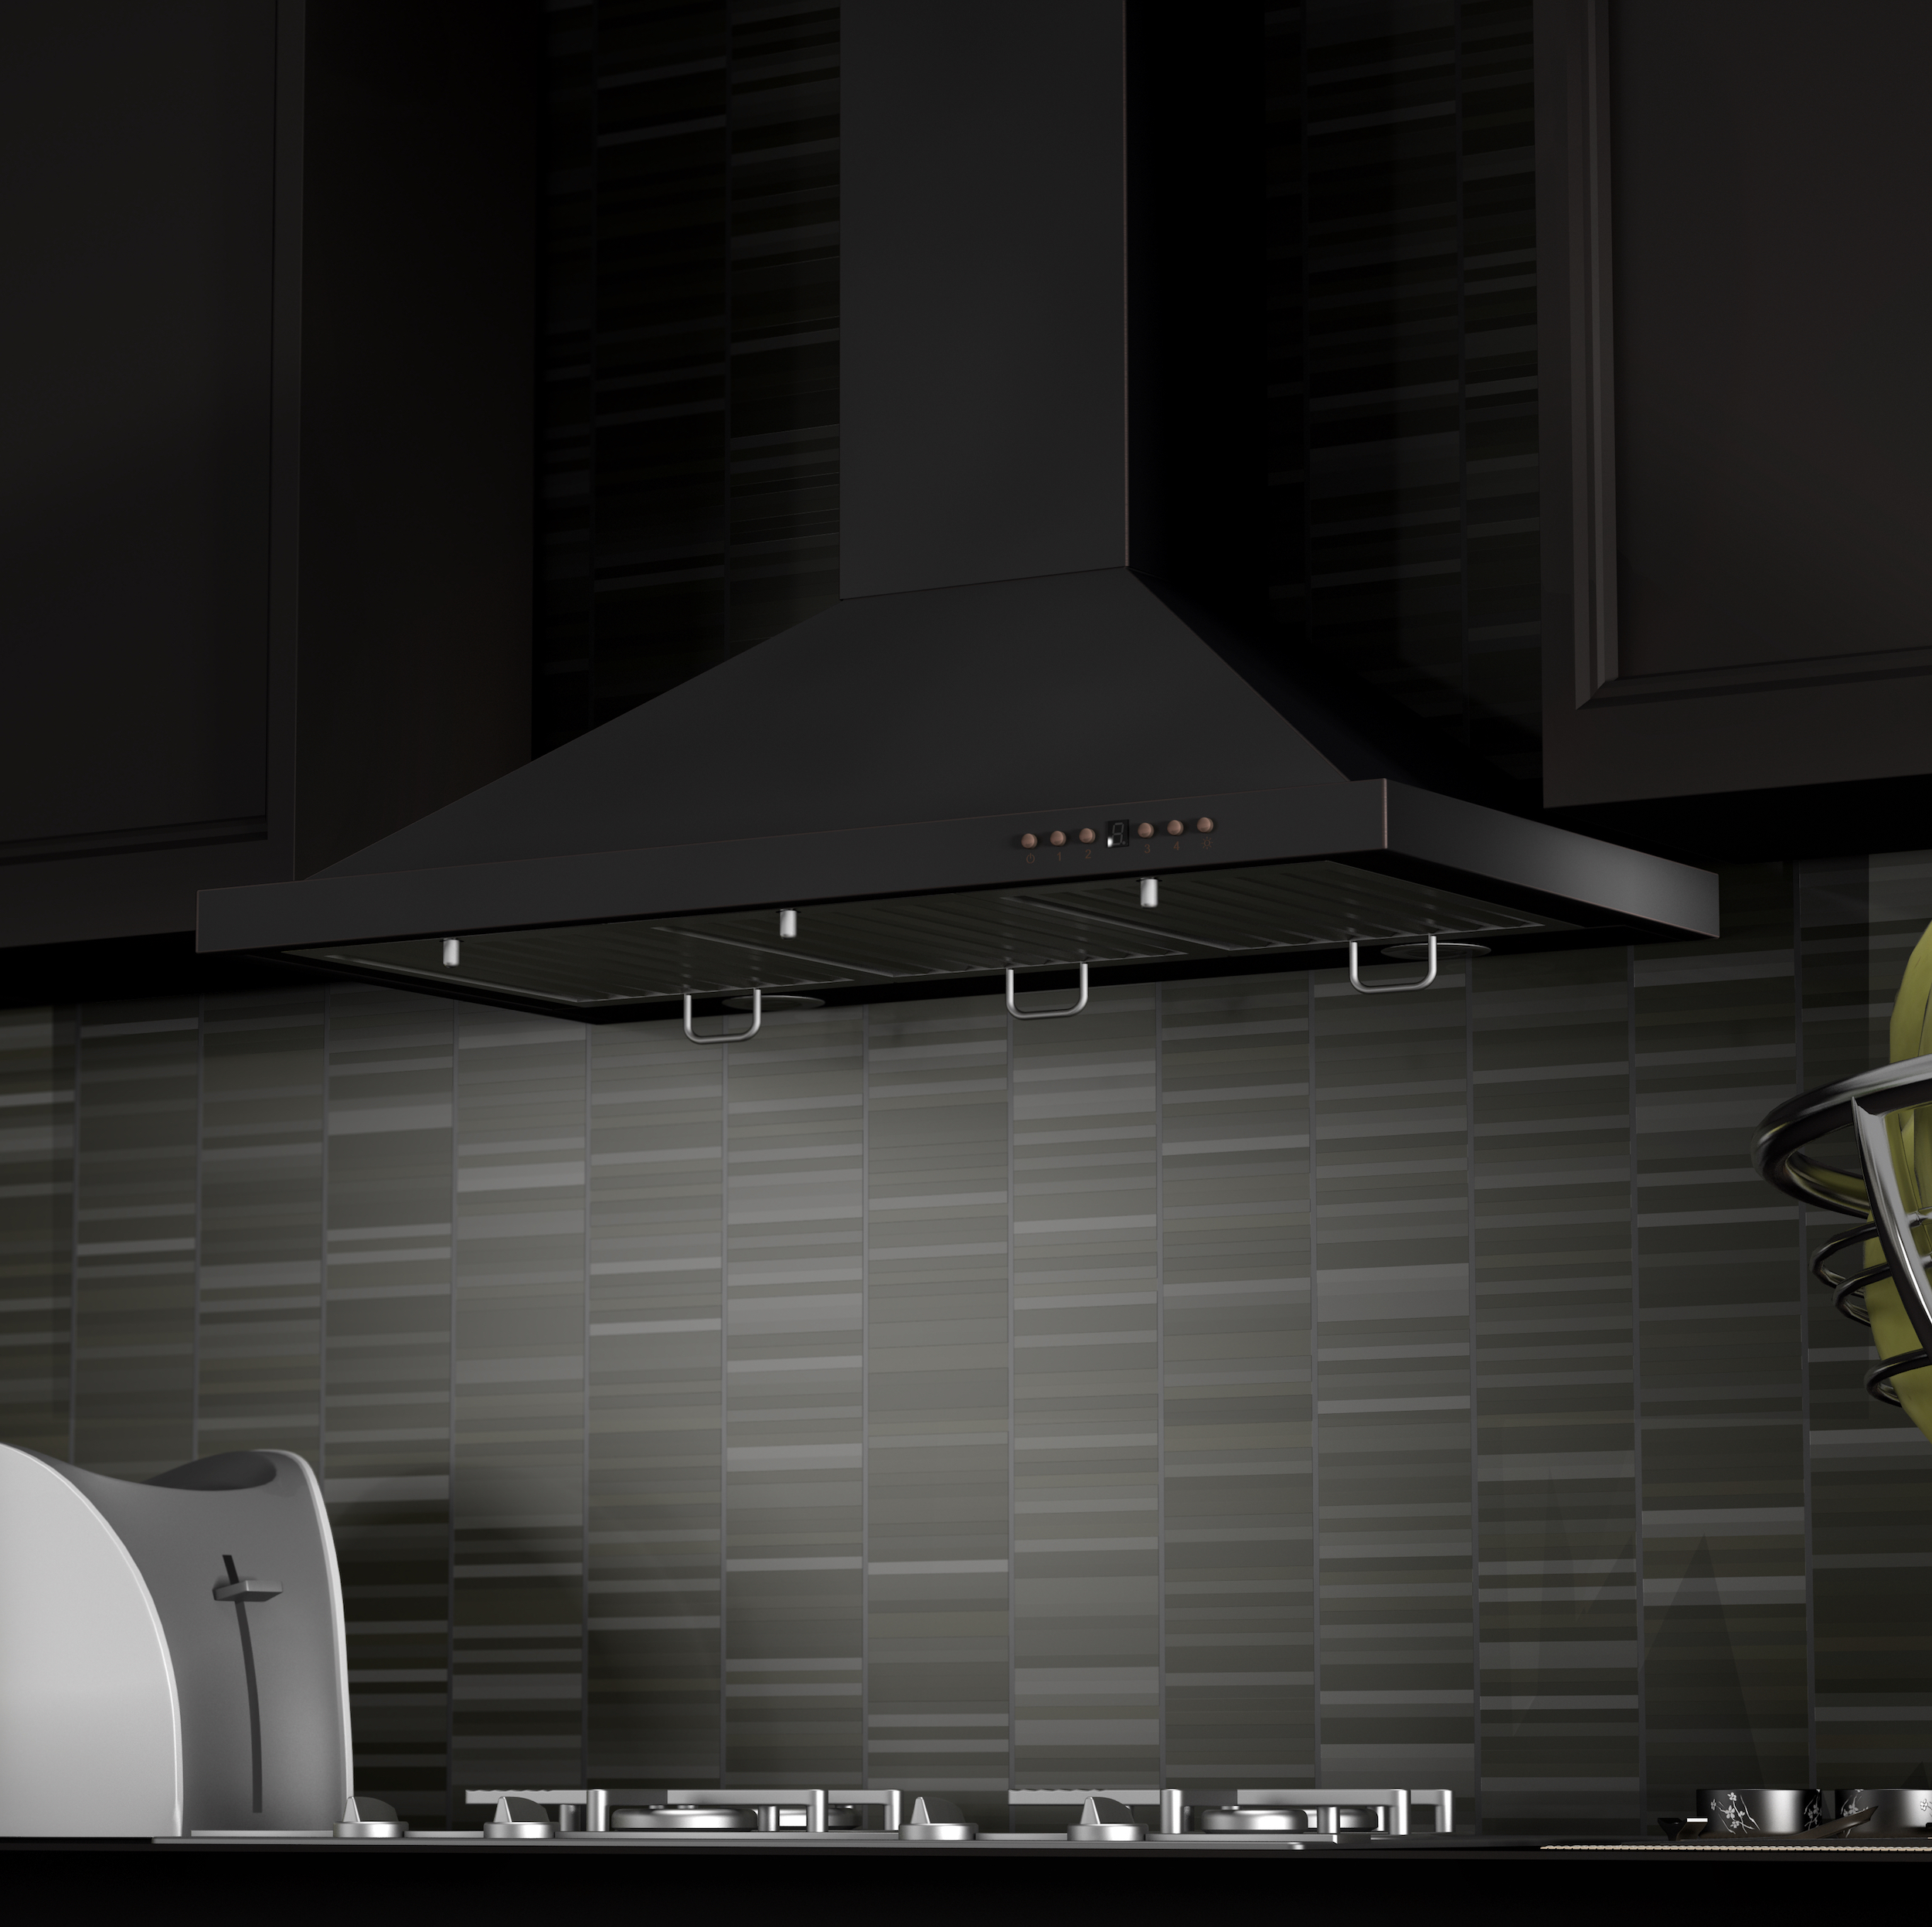 zline-copper-wall-mounted-range-hood-8KBB-kitchen 1.jpg